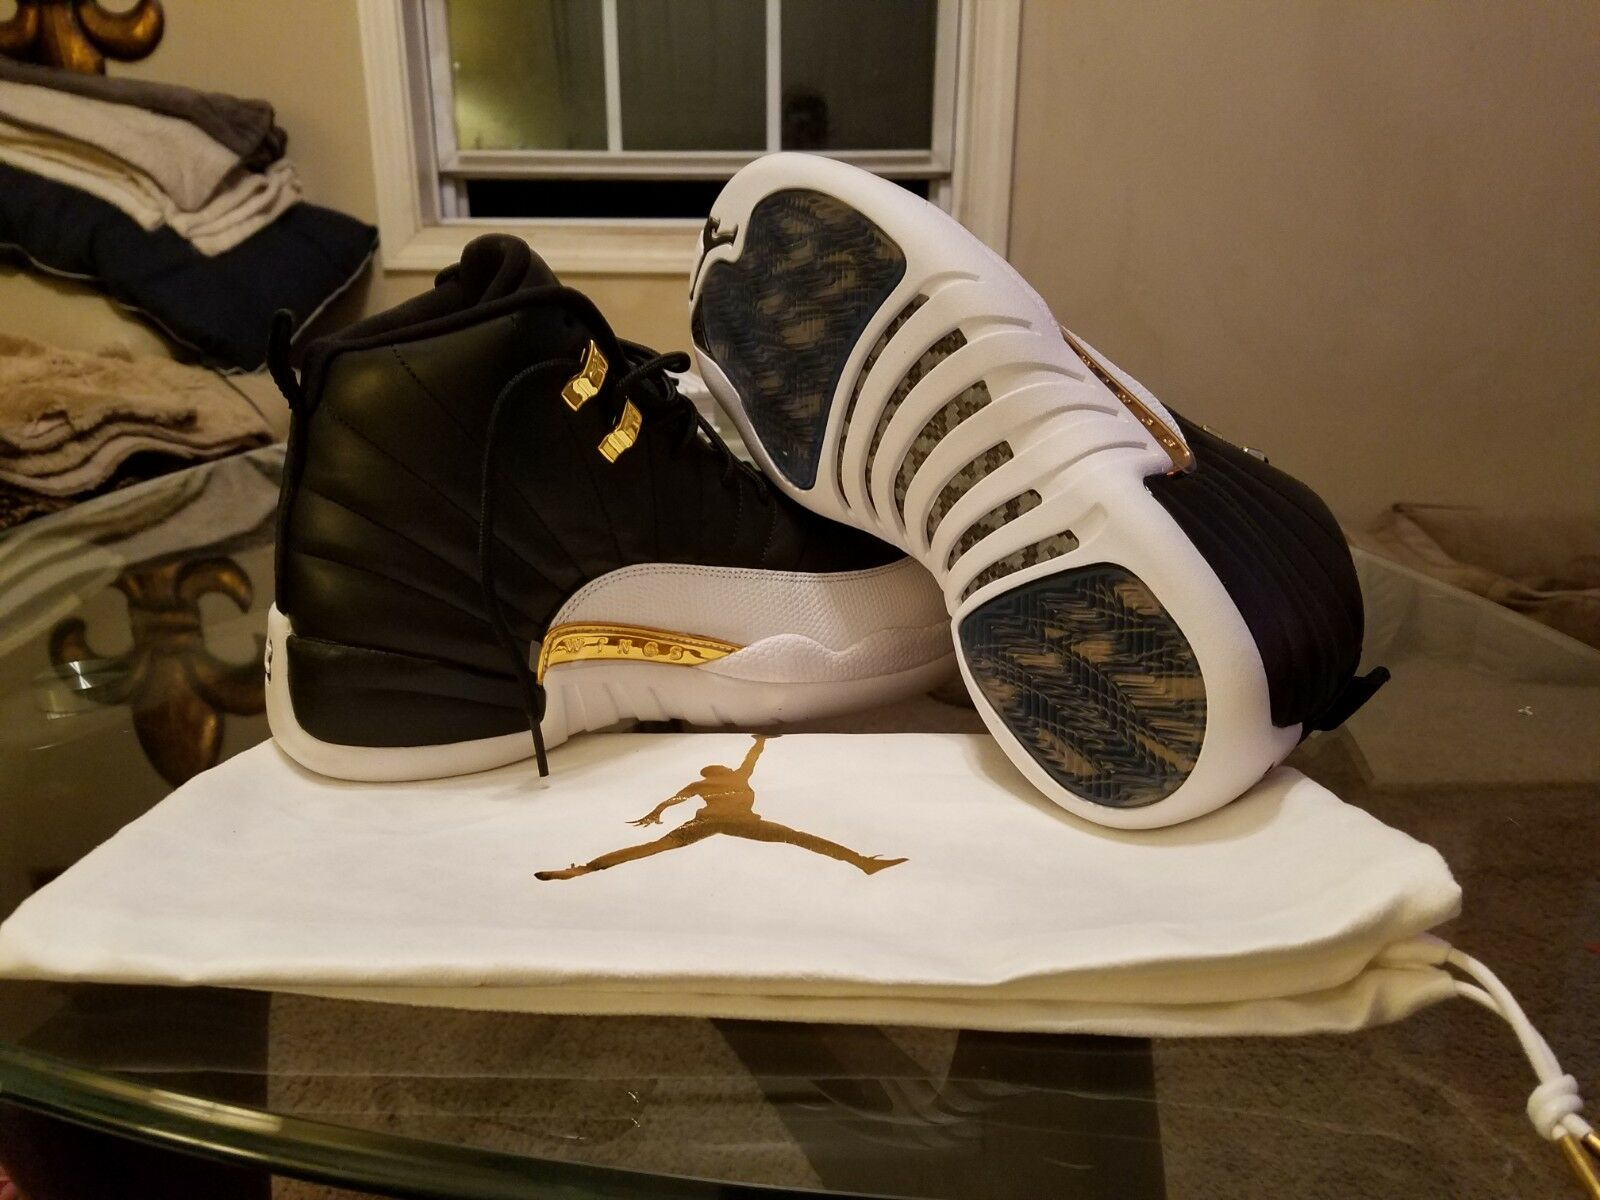 43217aed738e86 Air Jordan 12 Retro Limited Edition Size 10 Never Worn In the box ...